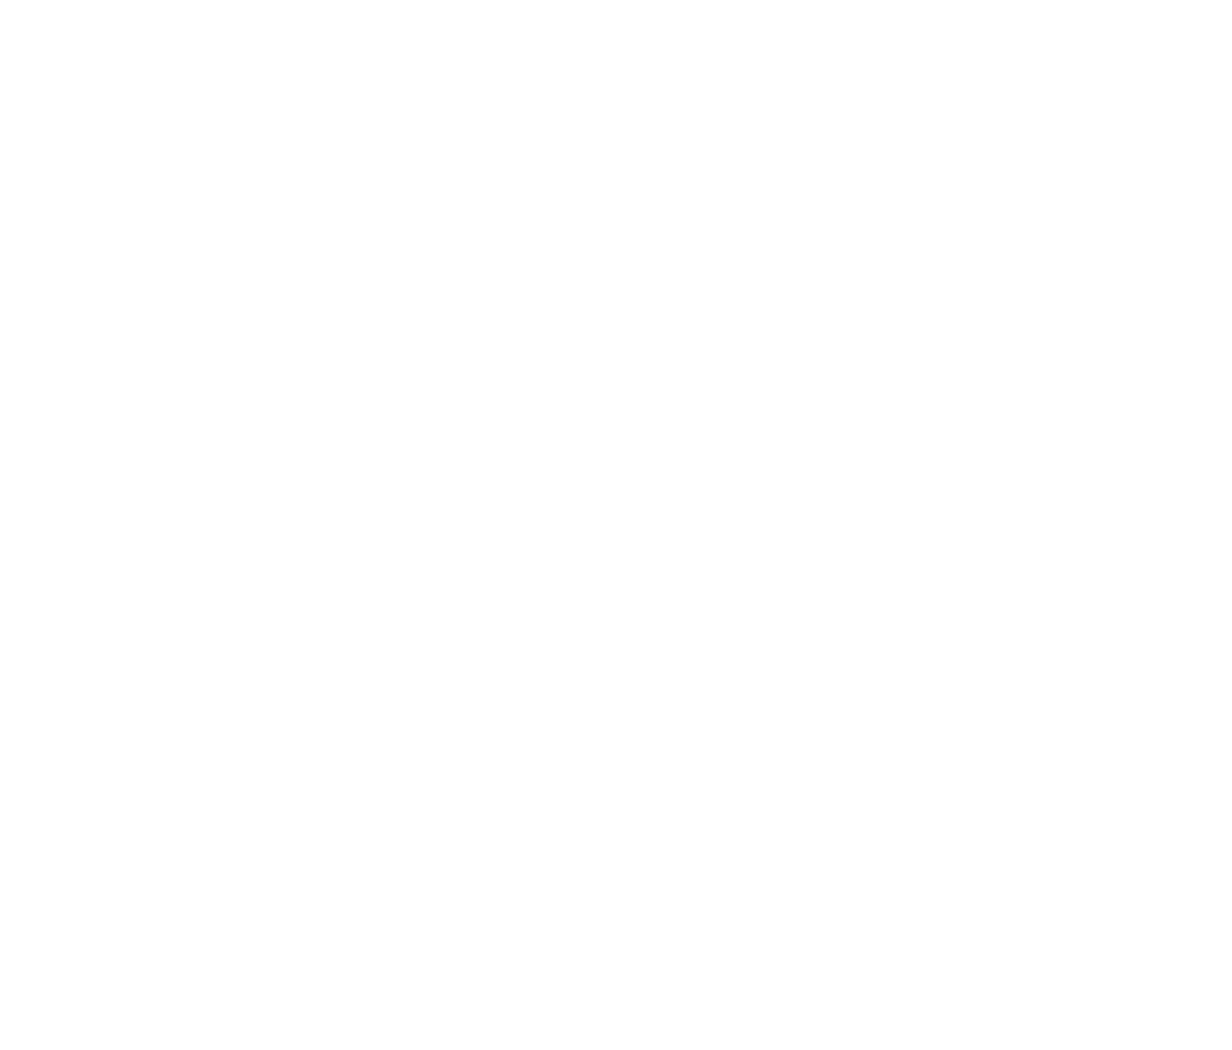 Travel Leisure Winner 2019